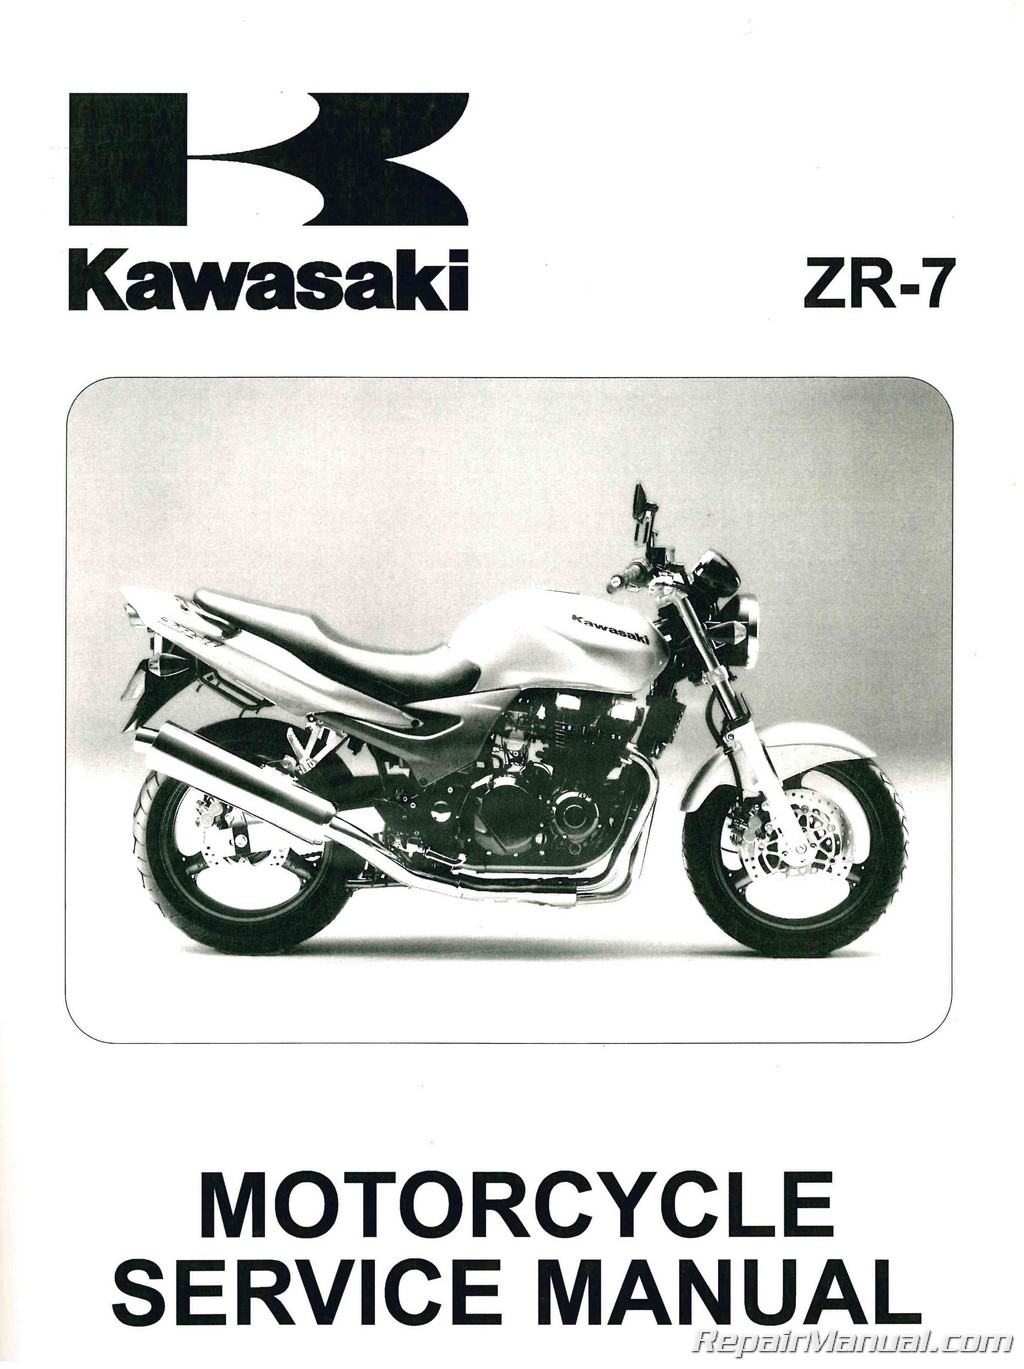 Kawasaki Zr750f Zr 7 Motorcycle Manual 1999 2003